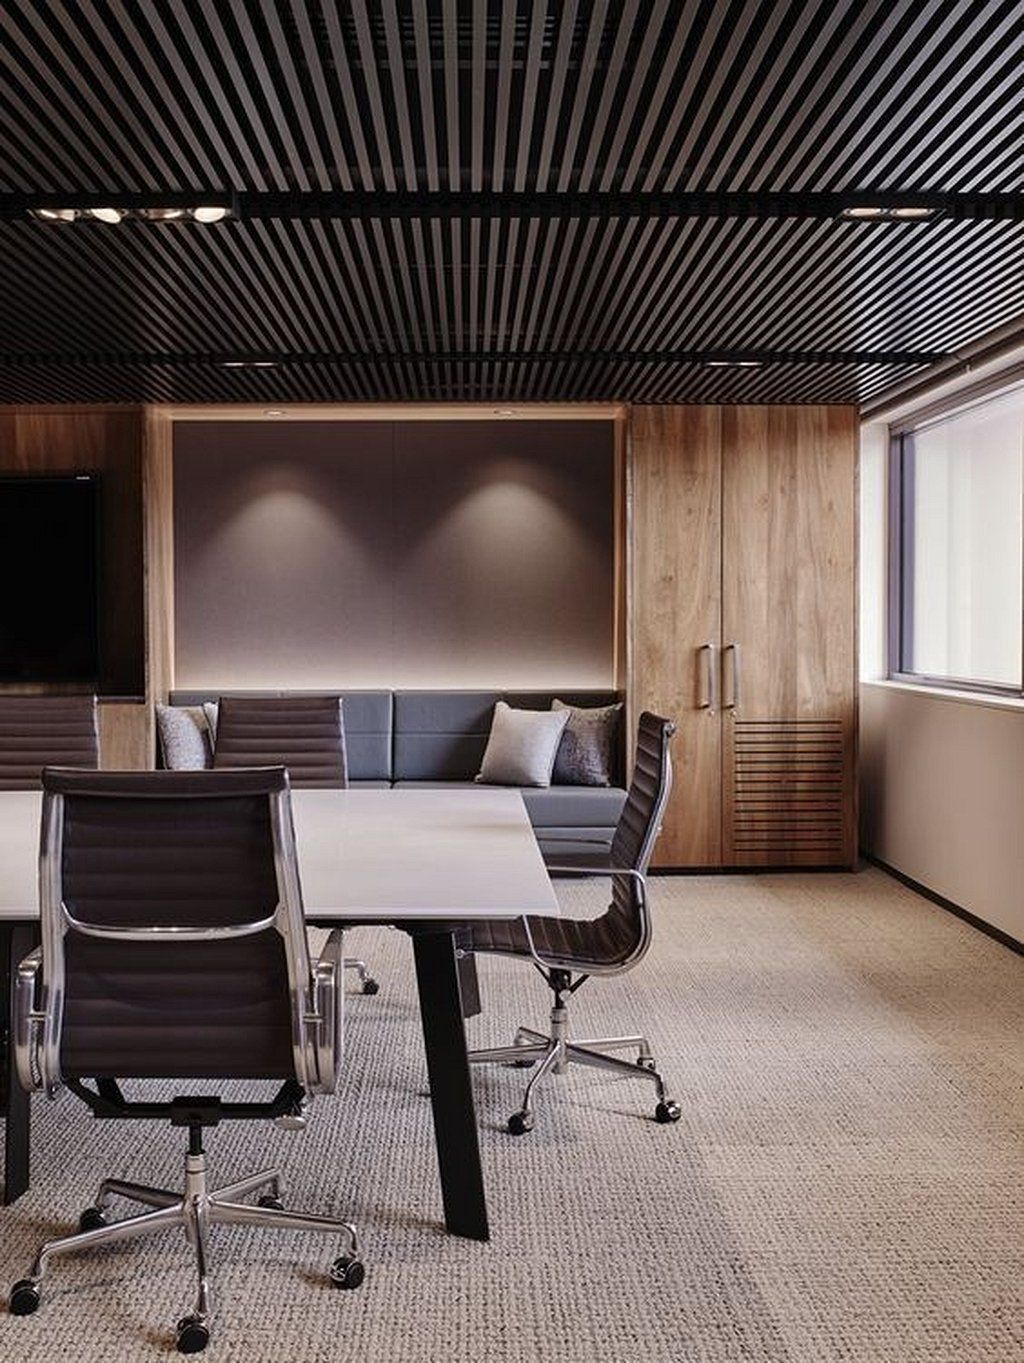 Interior design for office ceiling corporate modern decor also best executive rh pinterest